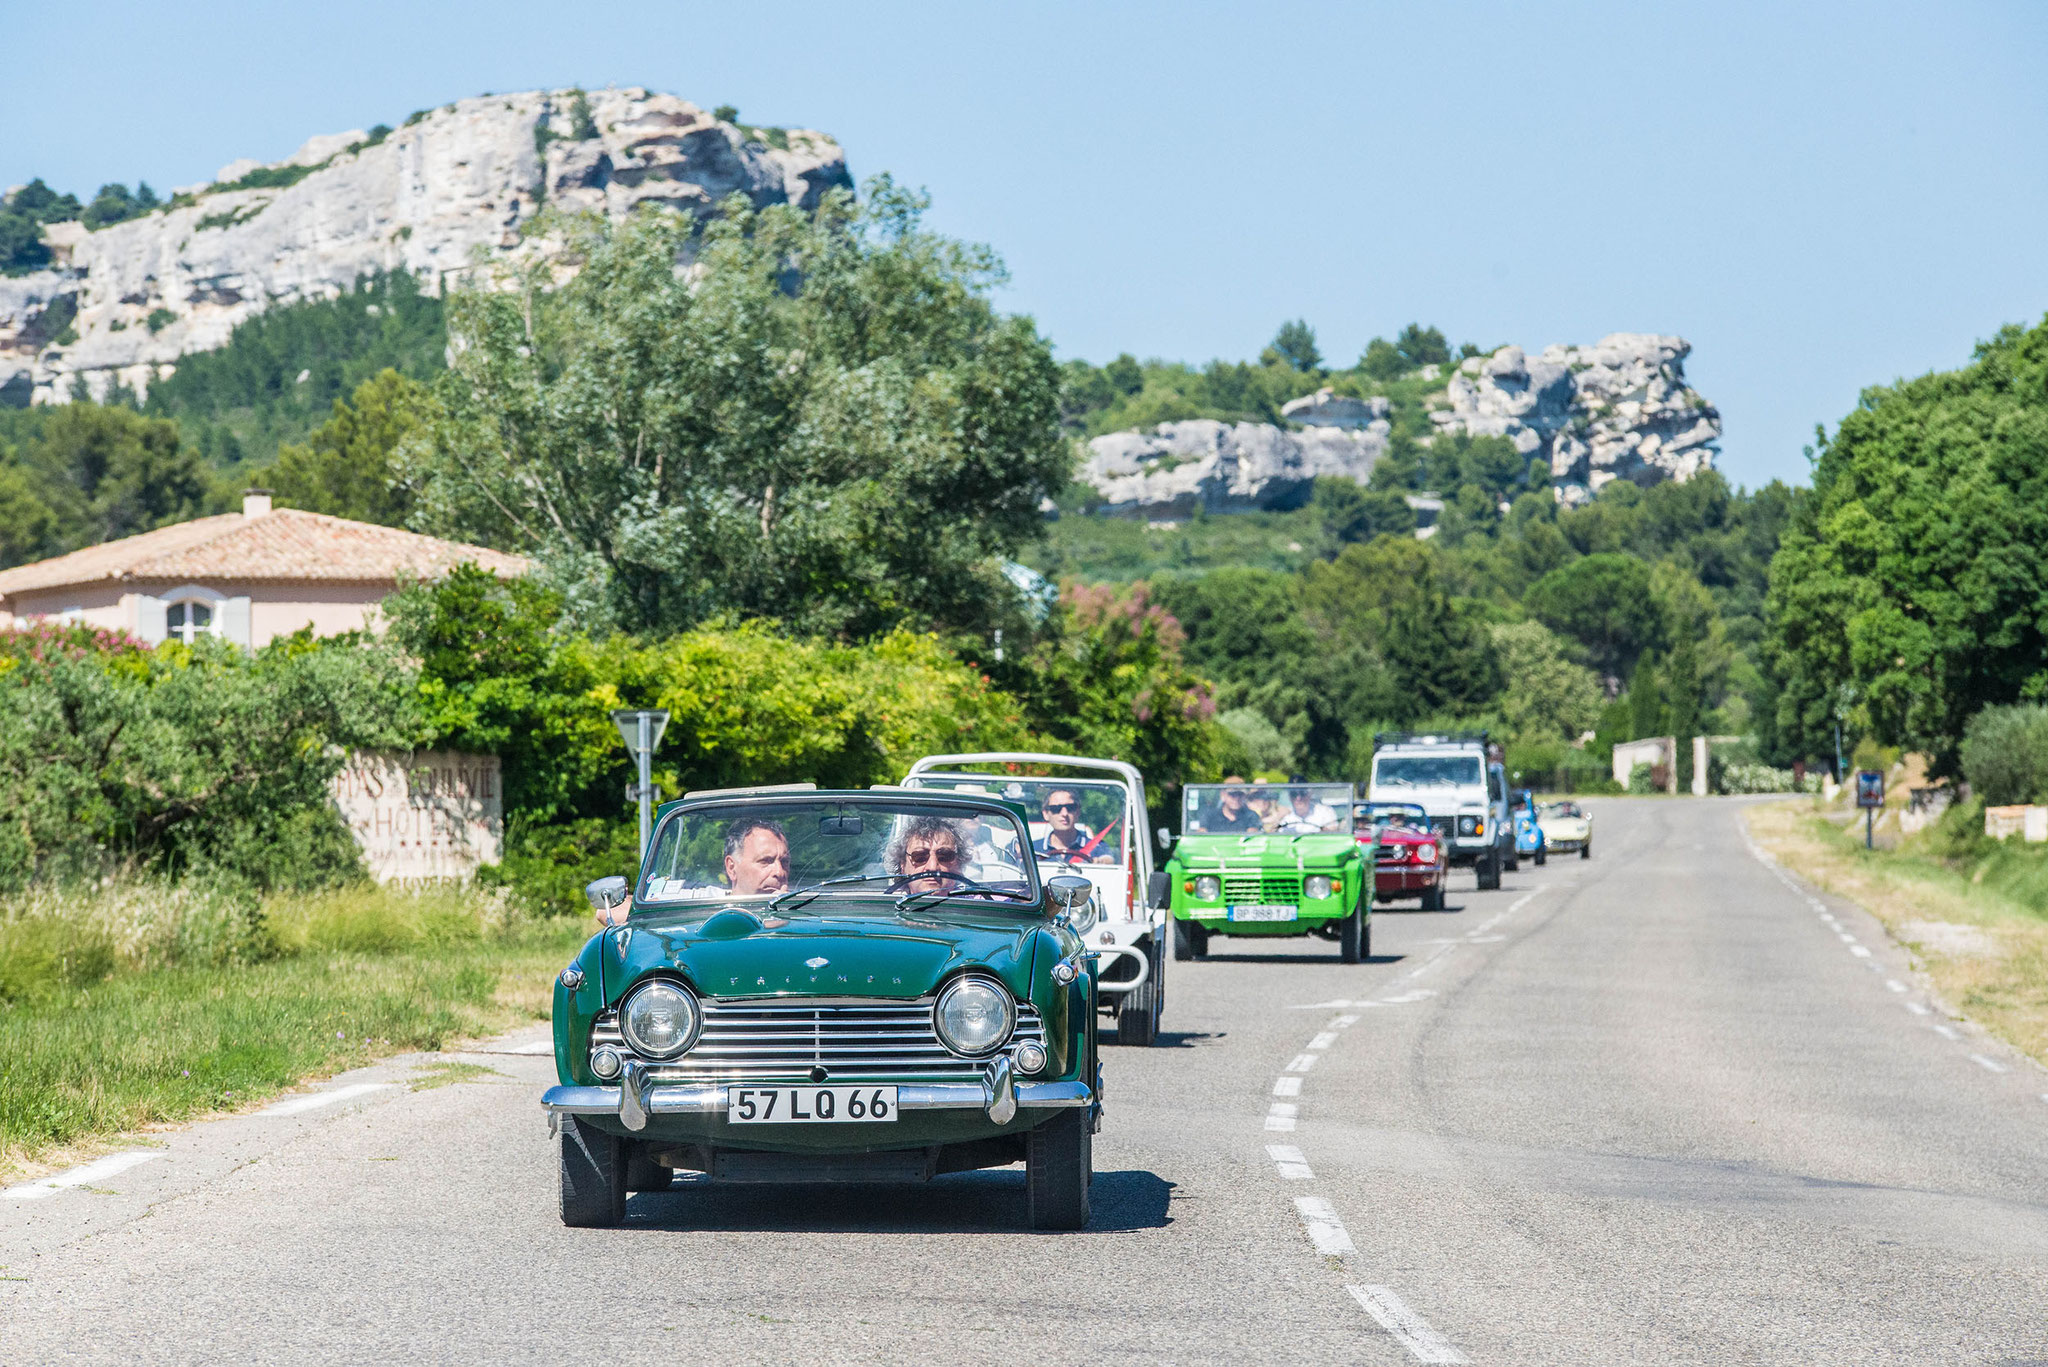 Sur place : excursions en cabriolet